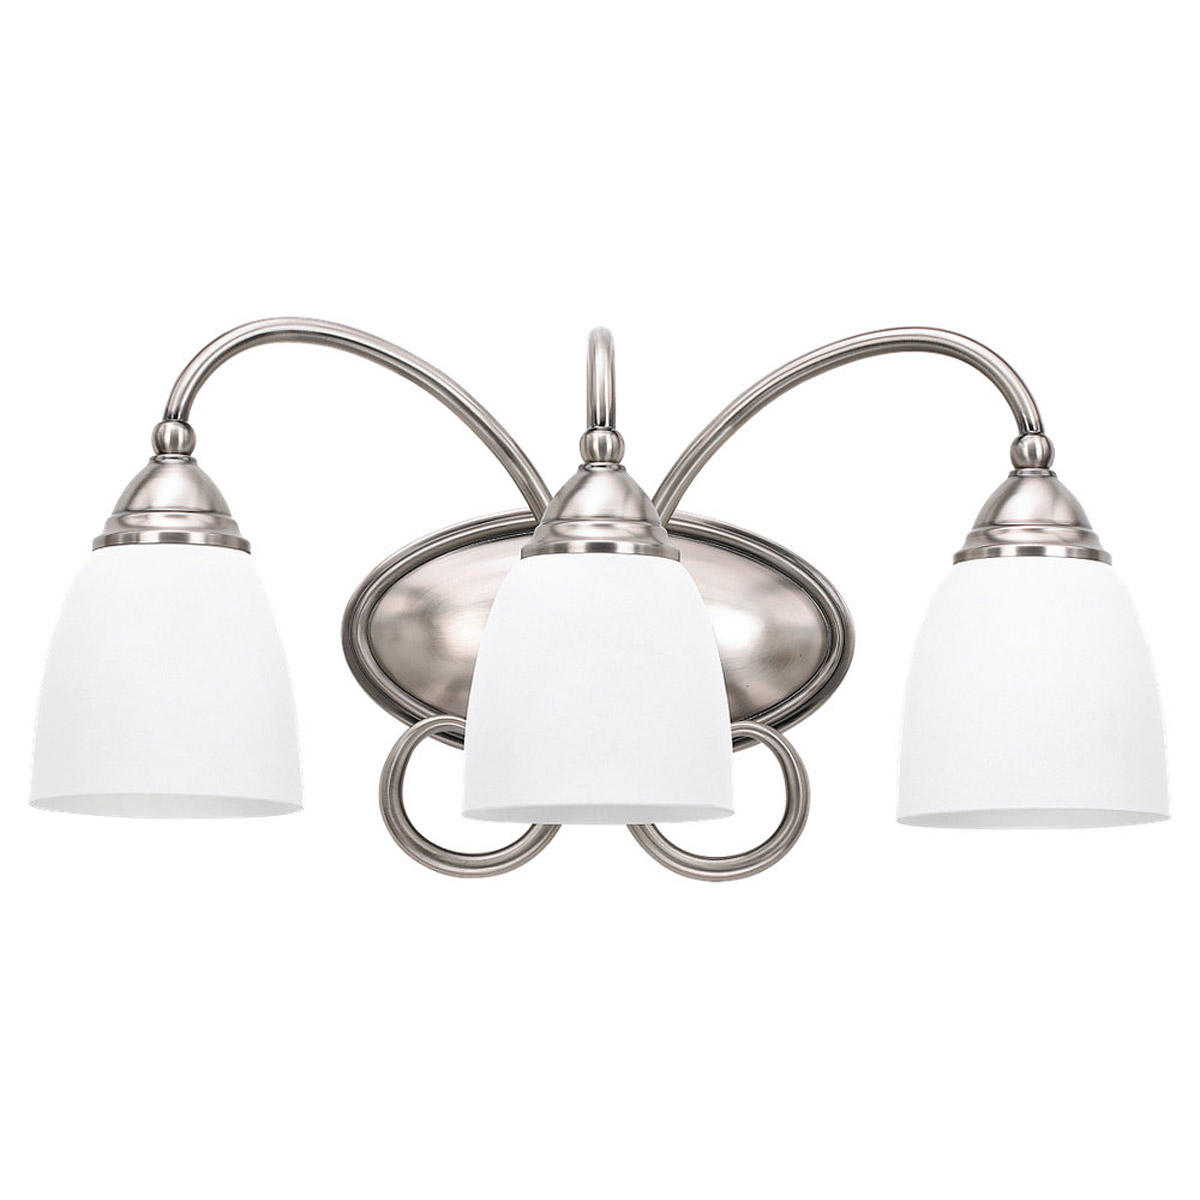 Sea Gull Lighting Montclaire 3 Light Bath Vanity in Antique Brushed Nickel 44106-965